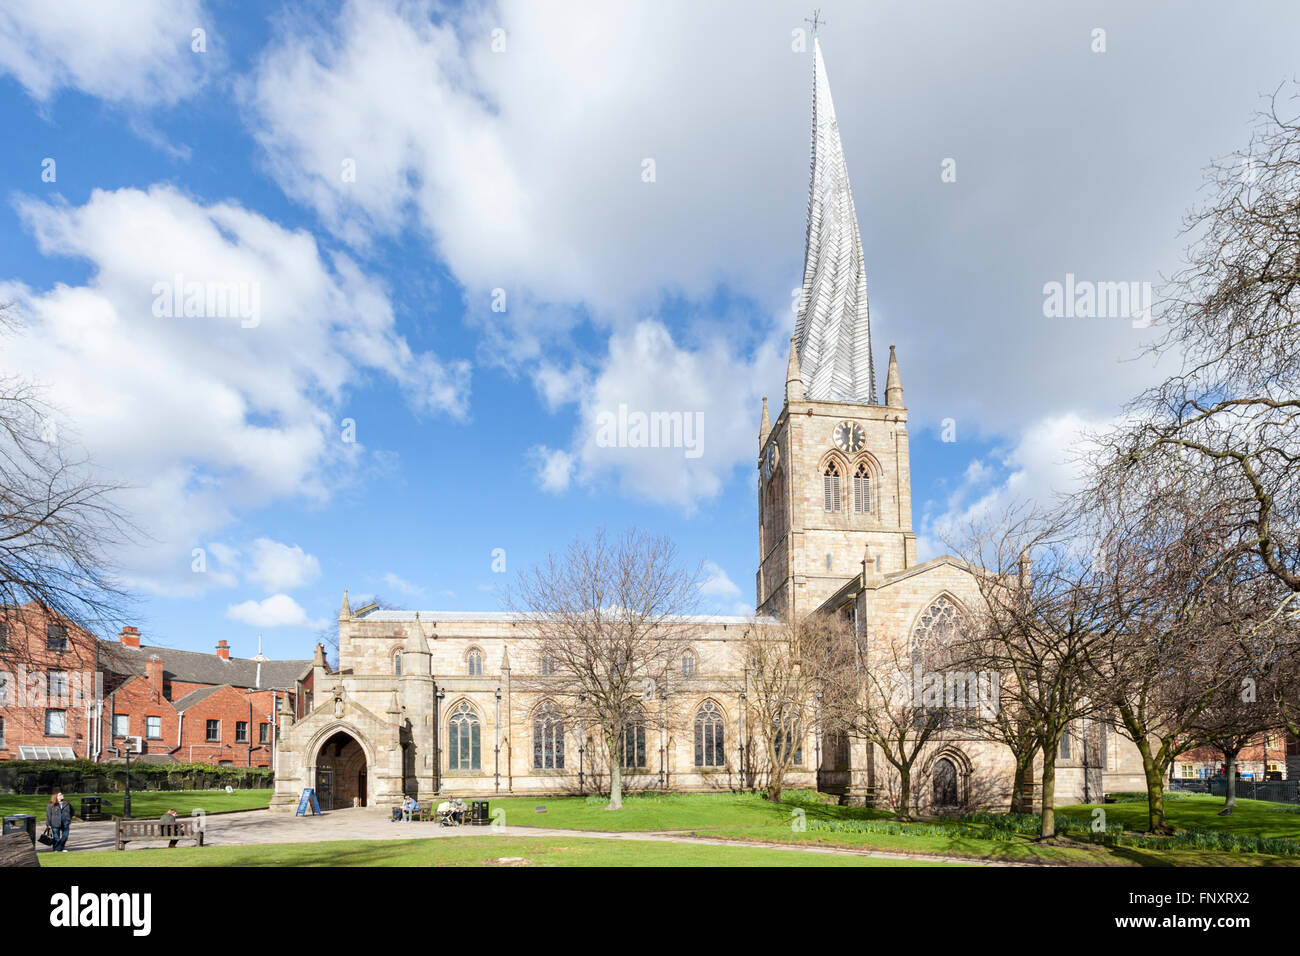 St Mary and All Saints Church with its famous crooked spire, Chesterfield, Derbyshire, England, UK - Stock Image